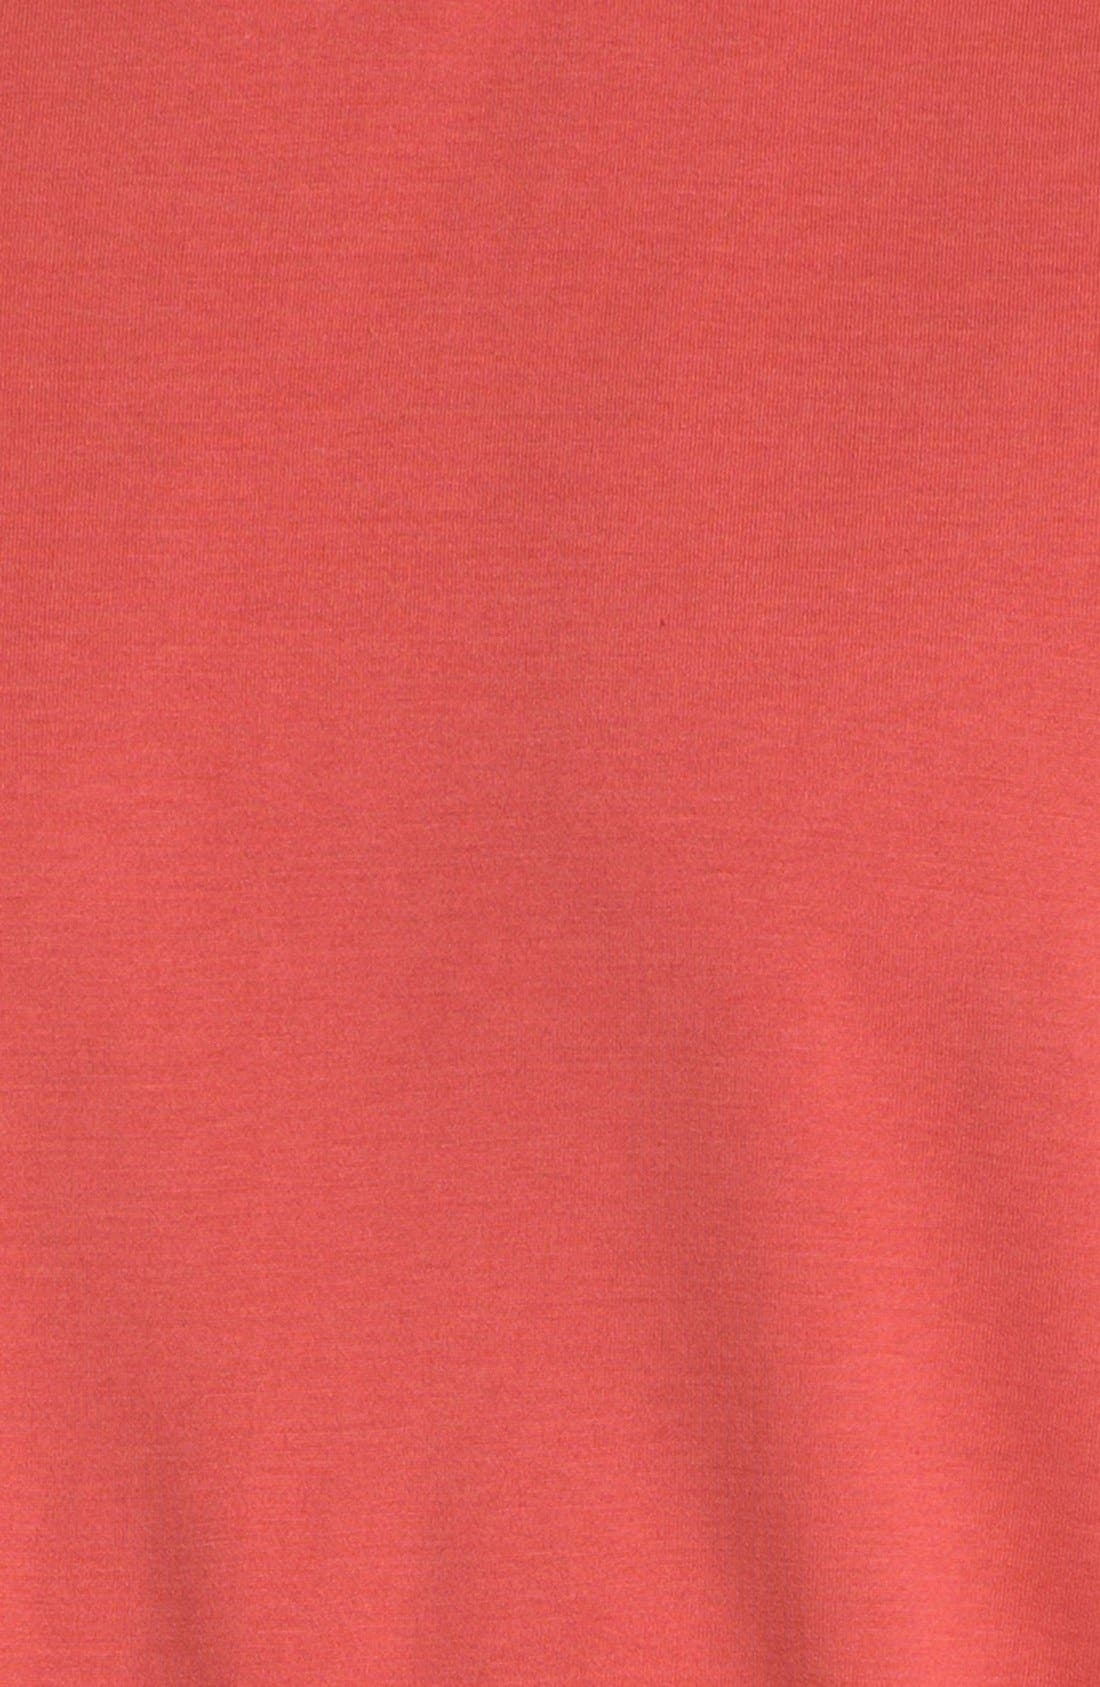 Alternate Image 3  - Daniel Buchler V-Neck Silk Blend T-Shirt